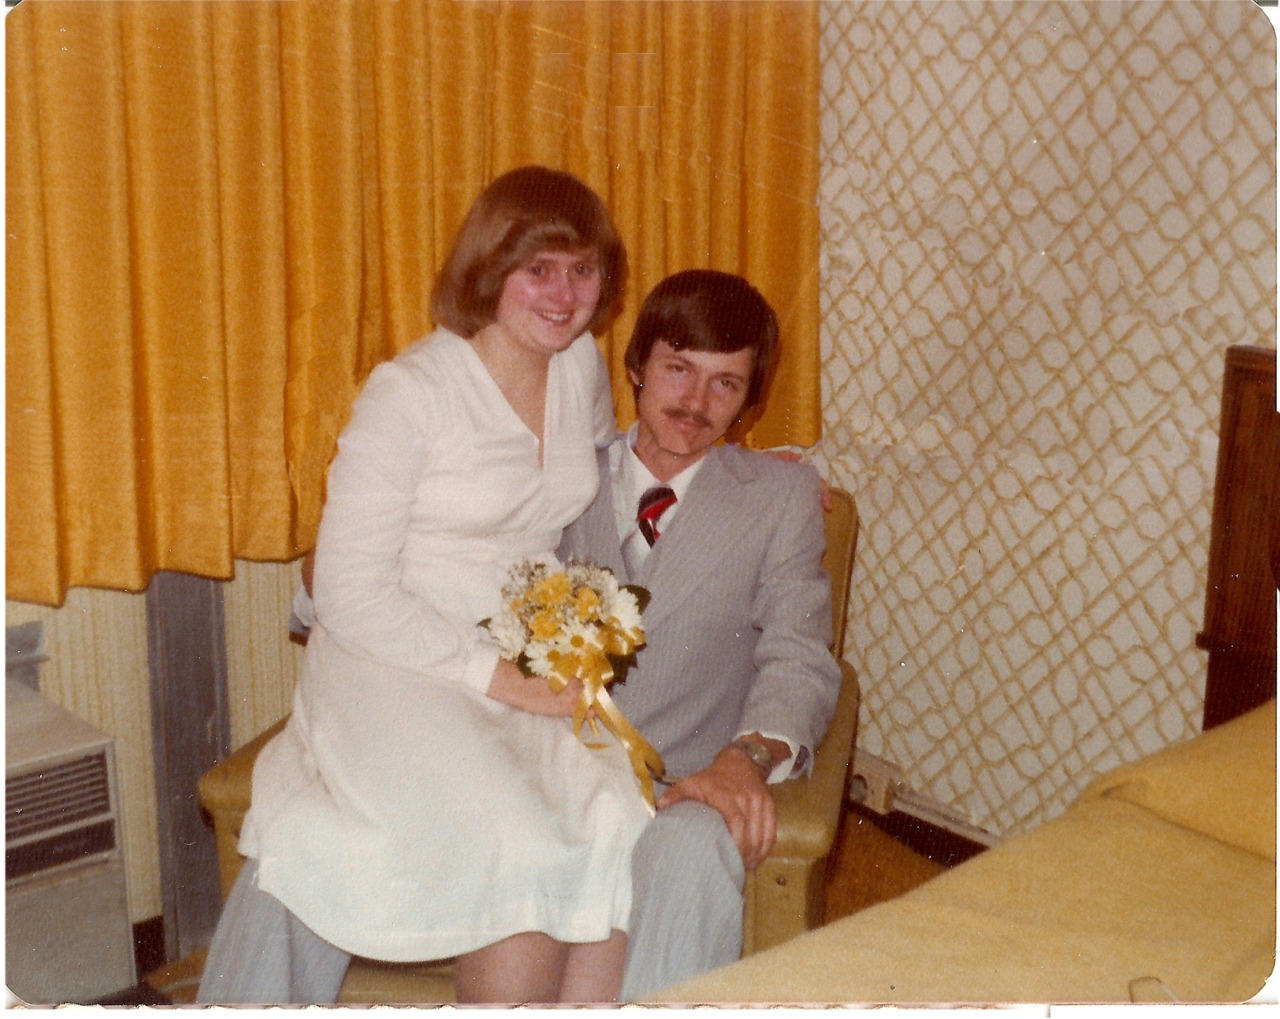 my mom and dad right after their wedding reception… 34 years ago today. my sweet mom… so happy she was crying. i love that. can't wait to be in that place… where i am so happy to be with the love of my life. yay for august 5th.